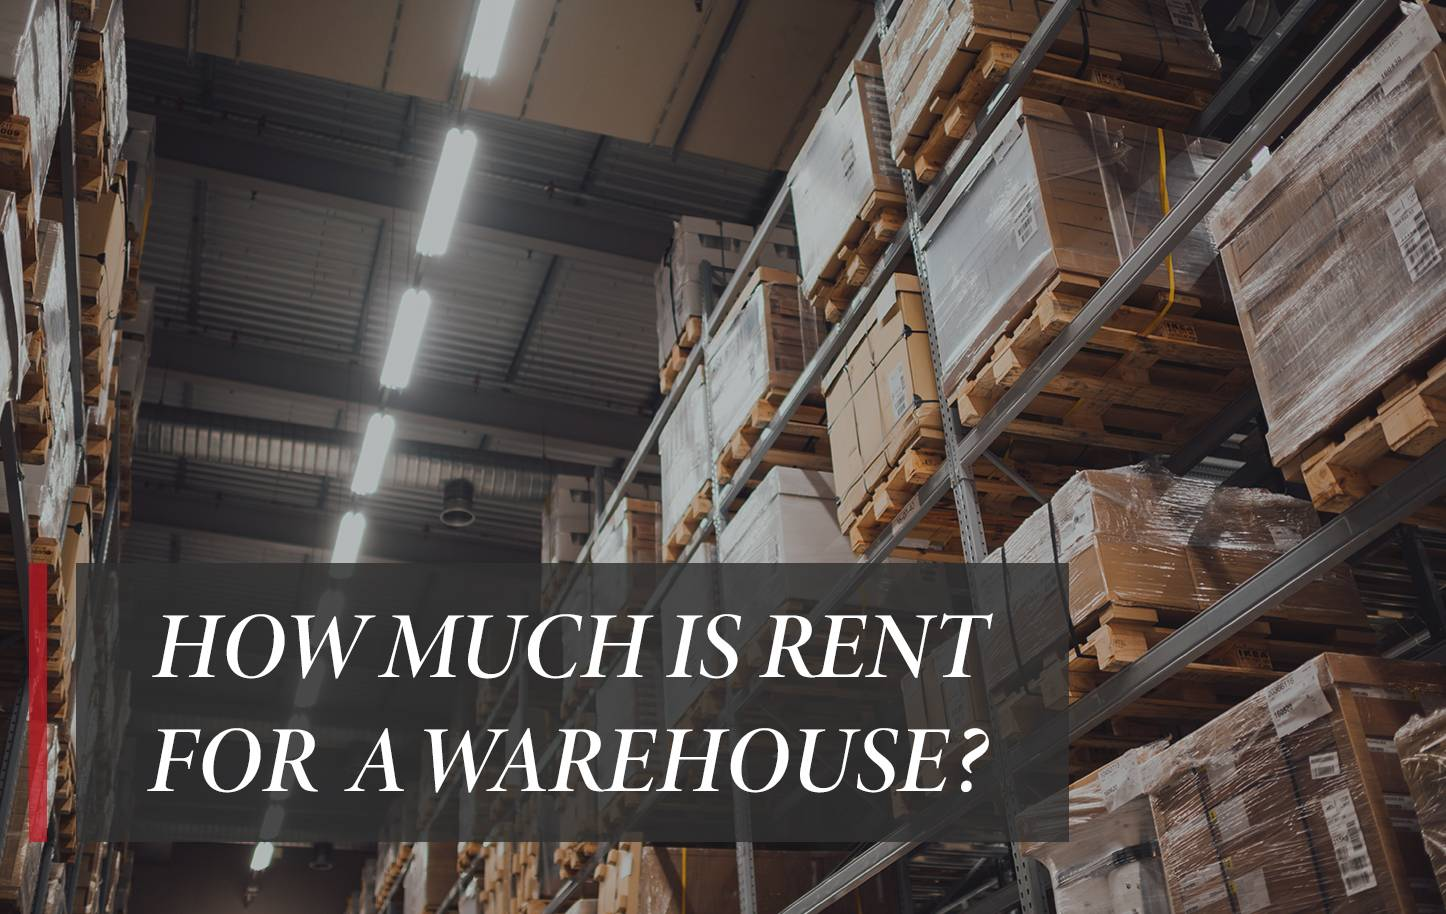 How much is rent for a warehouse?